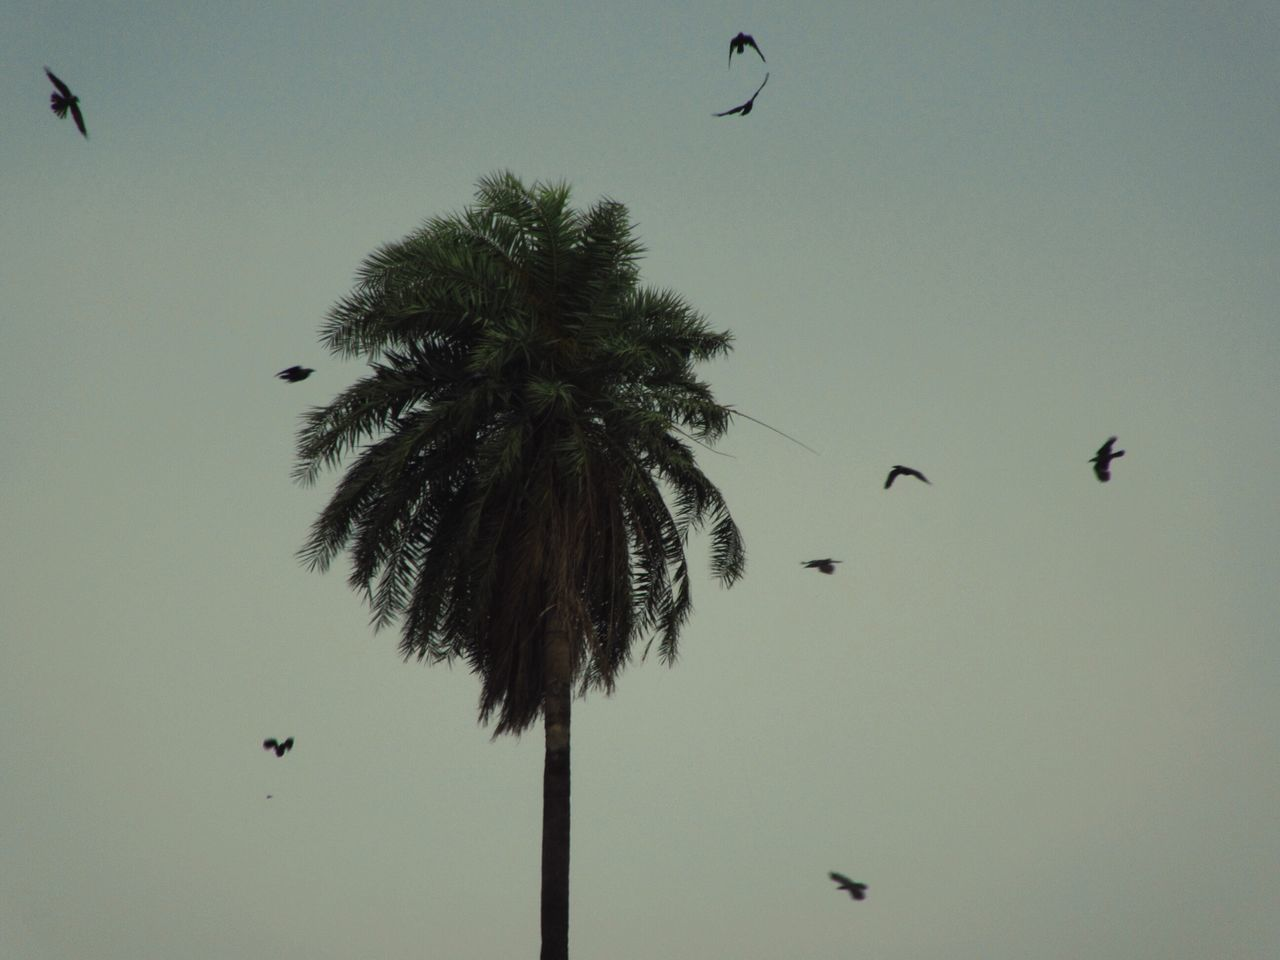 flying, bird, mid-air, animals in the wild, animal themes, low angle view, animal wildlife, nature, tree, spread wings, outdoors, clear sky, sky, beauty in nature, large group of animals, palm tree, flock of birds, bat - animal, day, paragliding, parachute, no people